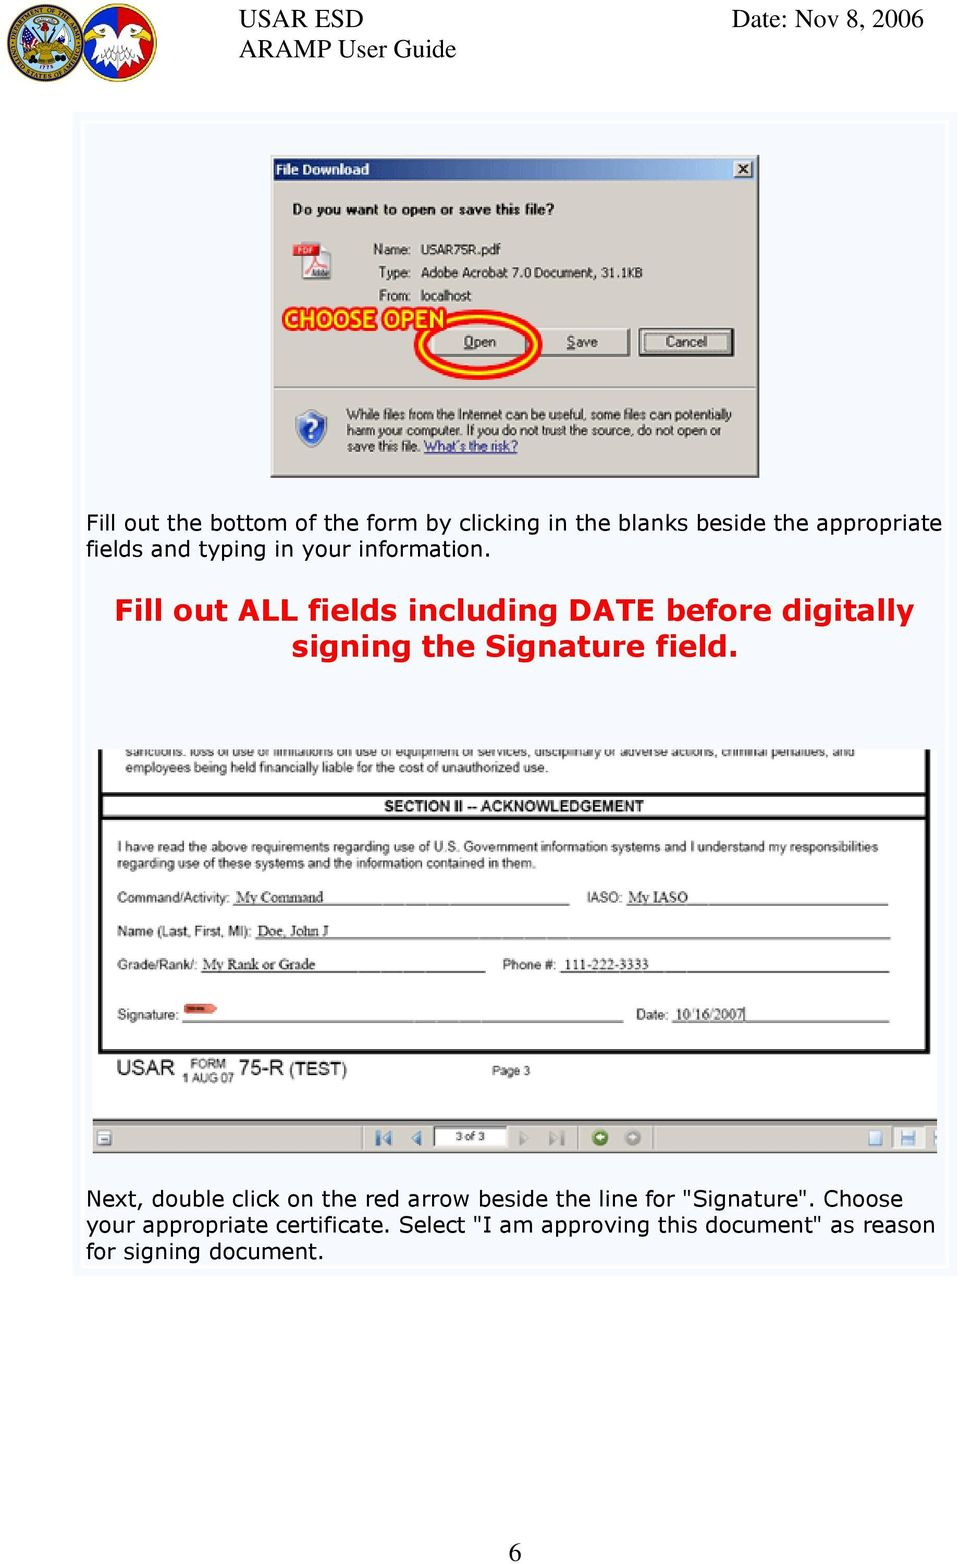 Fill out ALL fields including DATE before digitally signing the Signature field.